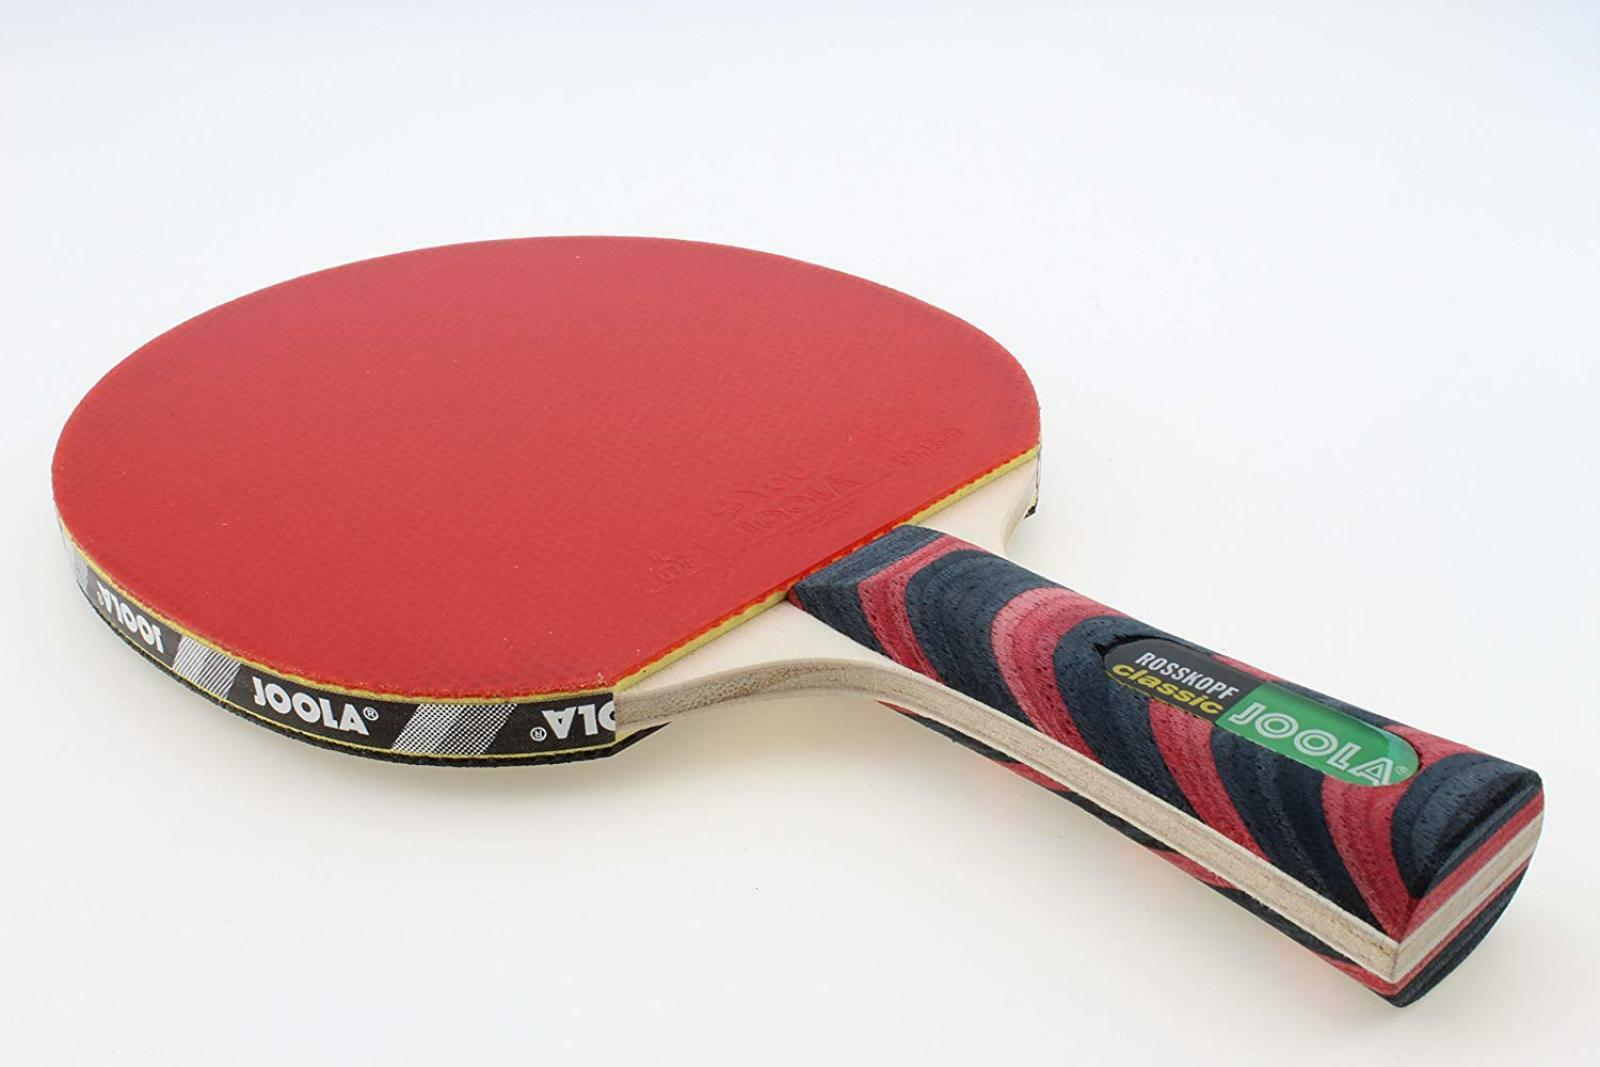 Joola competition table tennis bat - Rosskopf classic model - multi-color